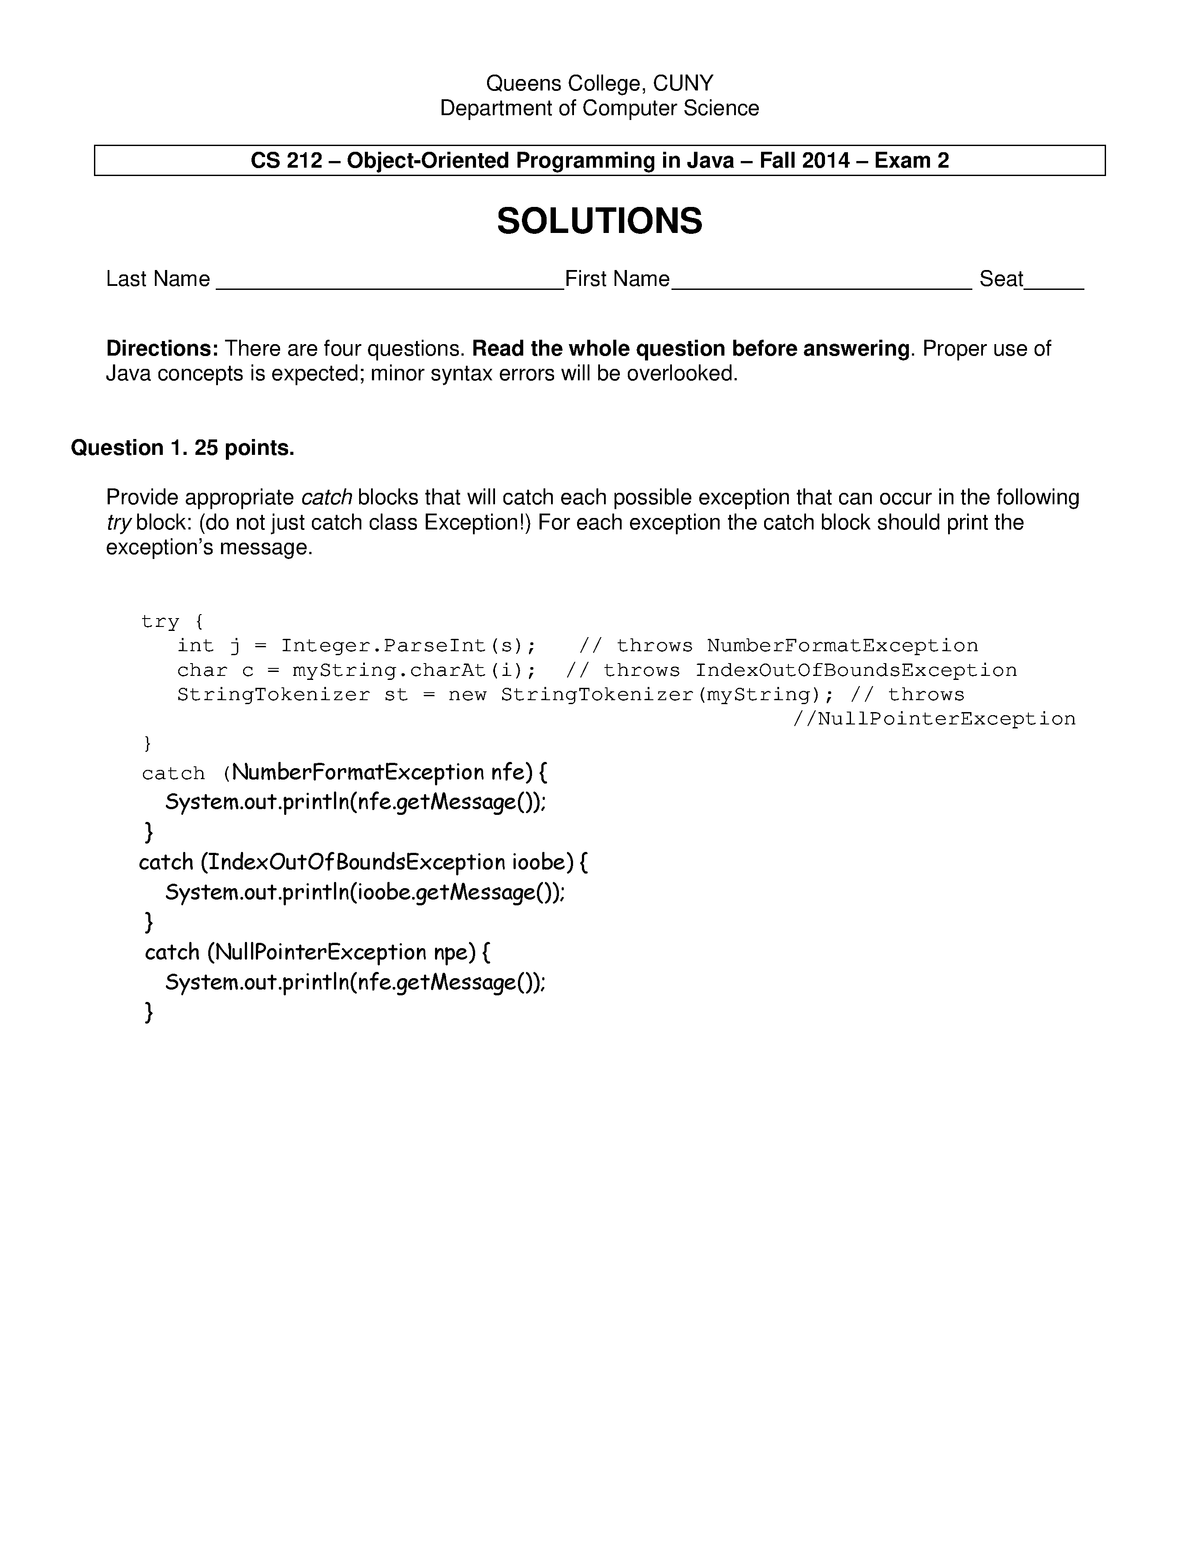 Exam Autumn 2014, questions and answers - CSCI 212 - QC CUNY